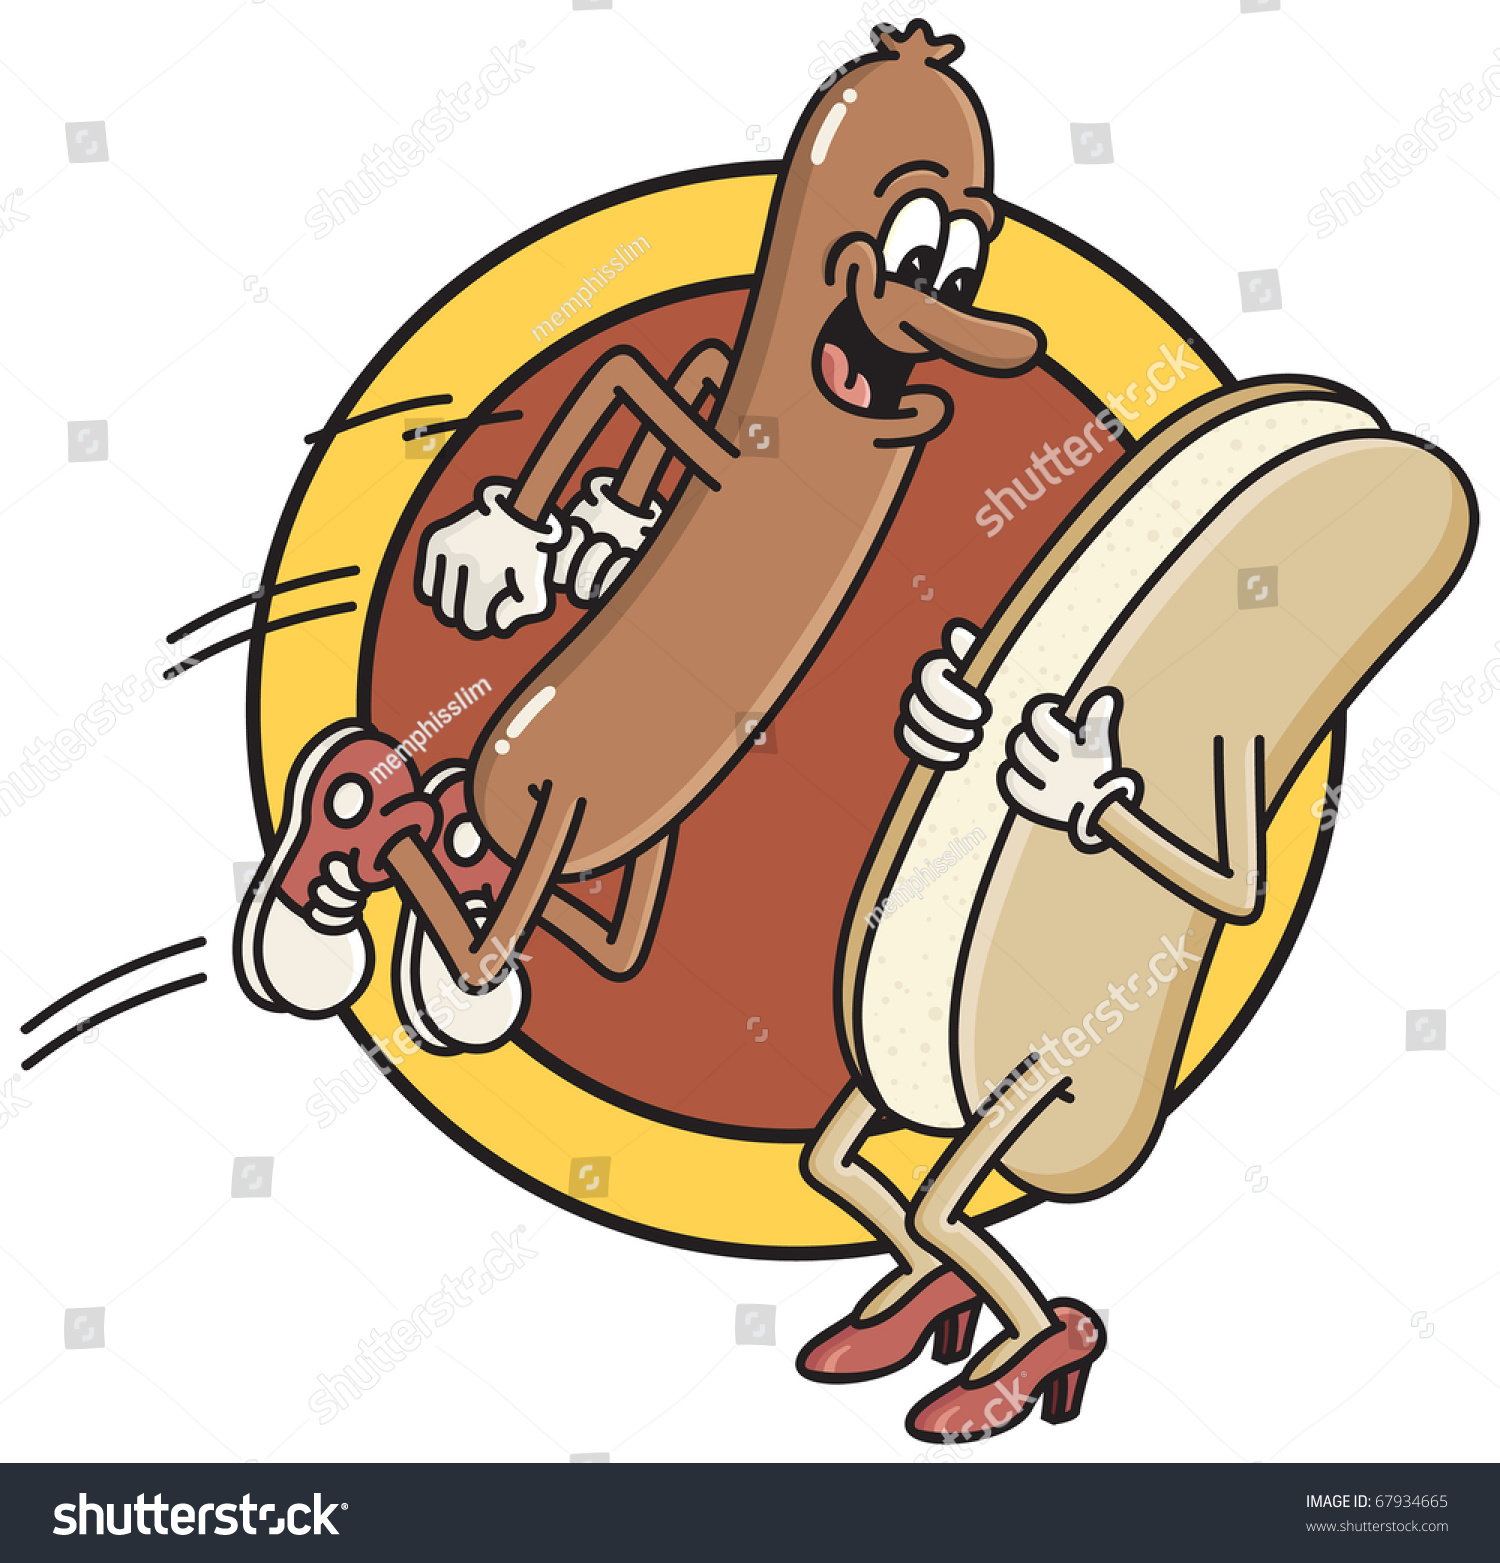 Smiling Hot Dog Jumps Into Waiting Stock Vector 67934665 - Shutterstock-9216